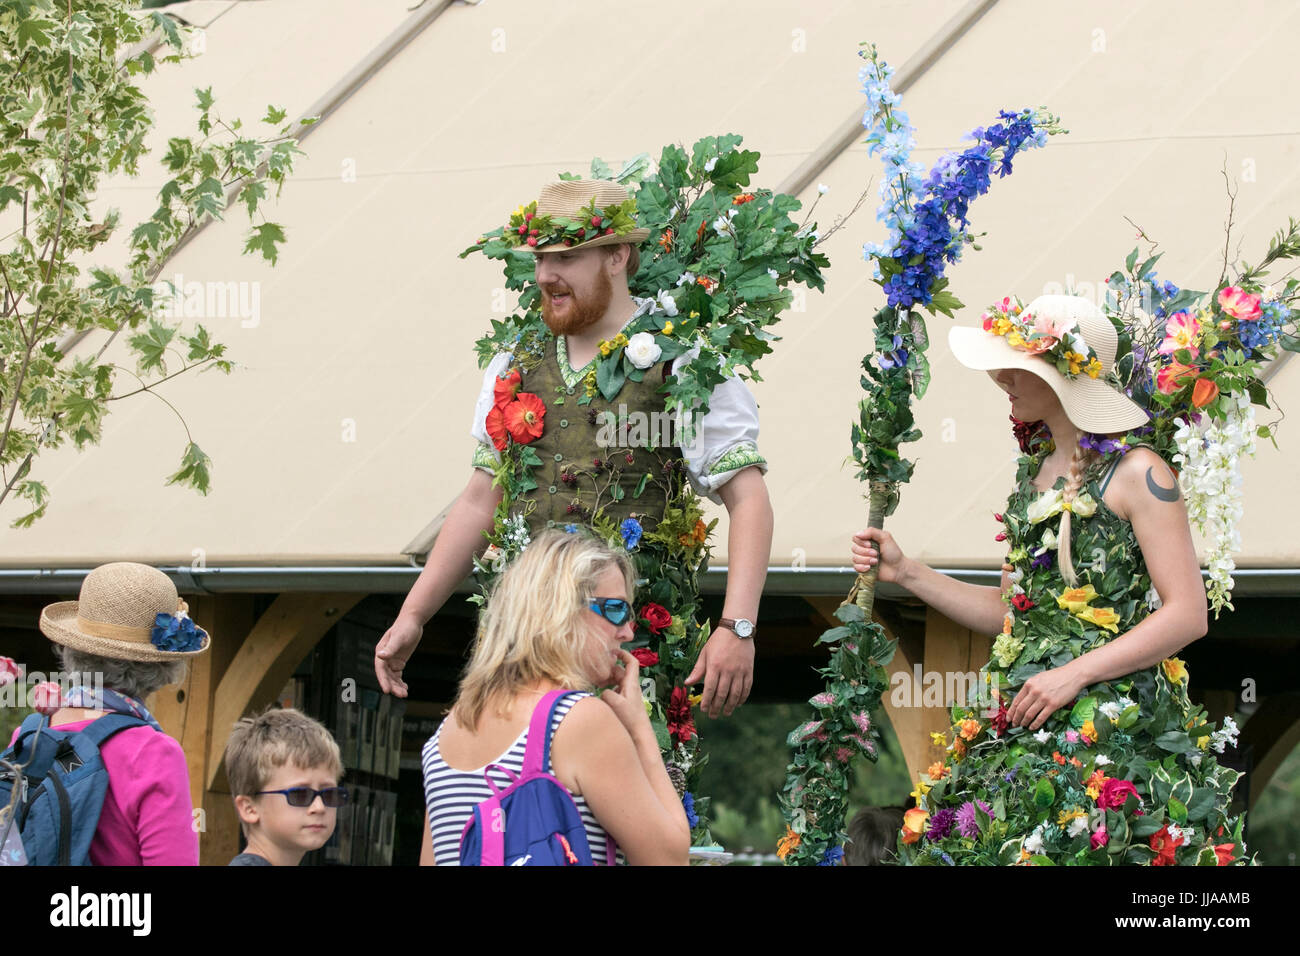 RHS Tatton Park Flower Show, Knutsford, Cheshire. 19th July 2017. The gates open on this years floral masterclass - Stock Image